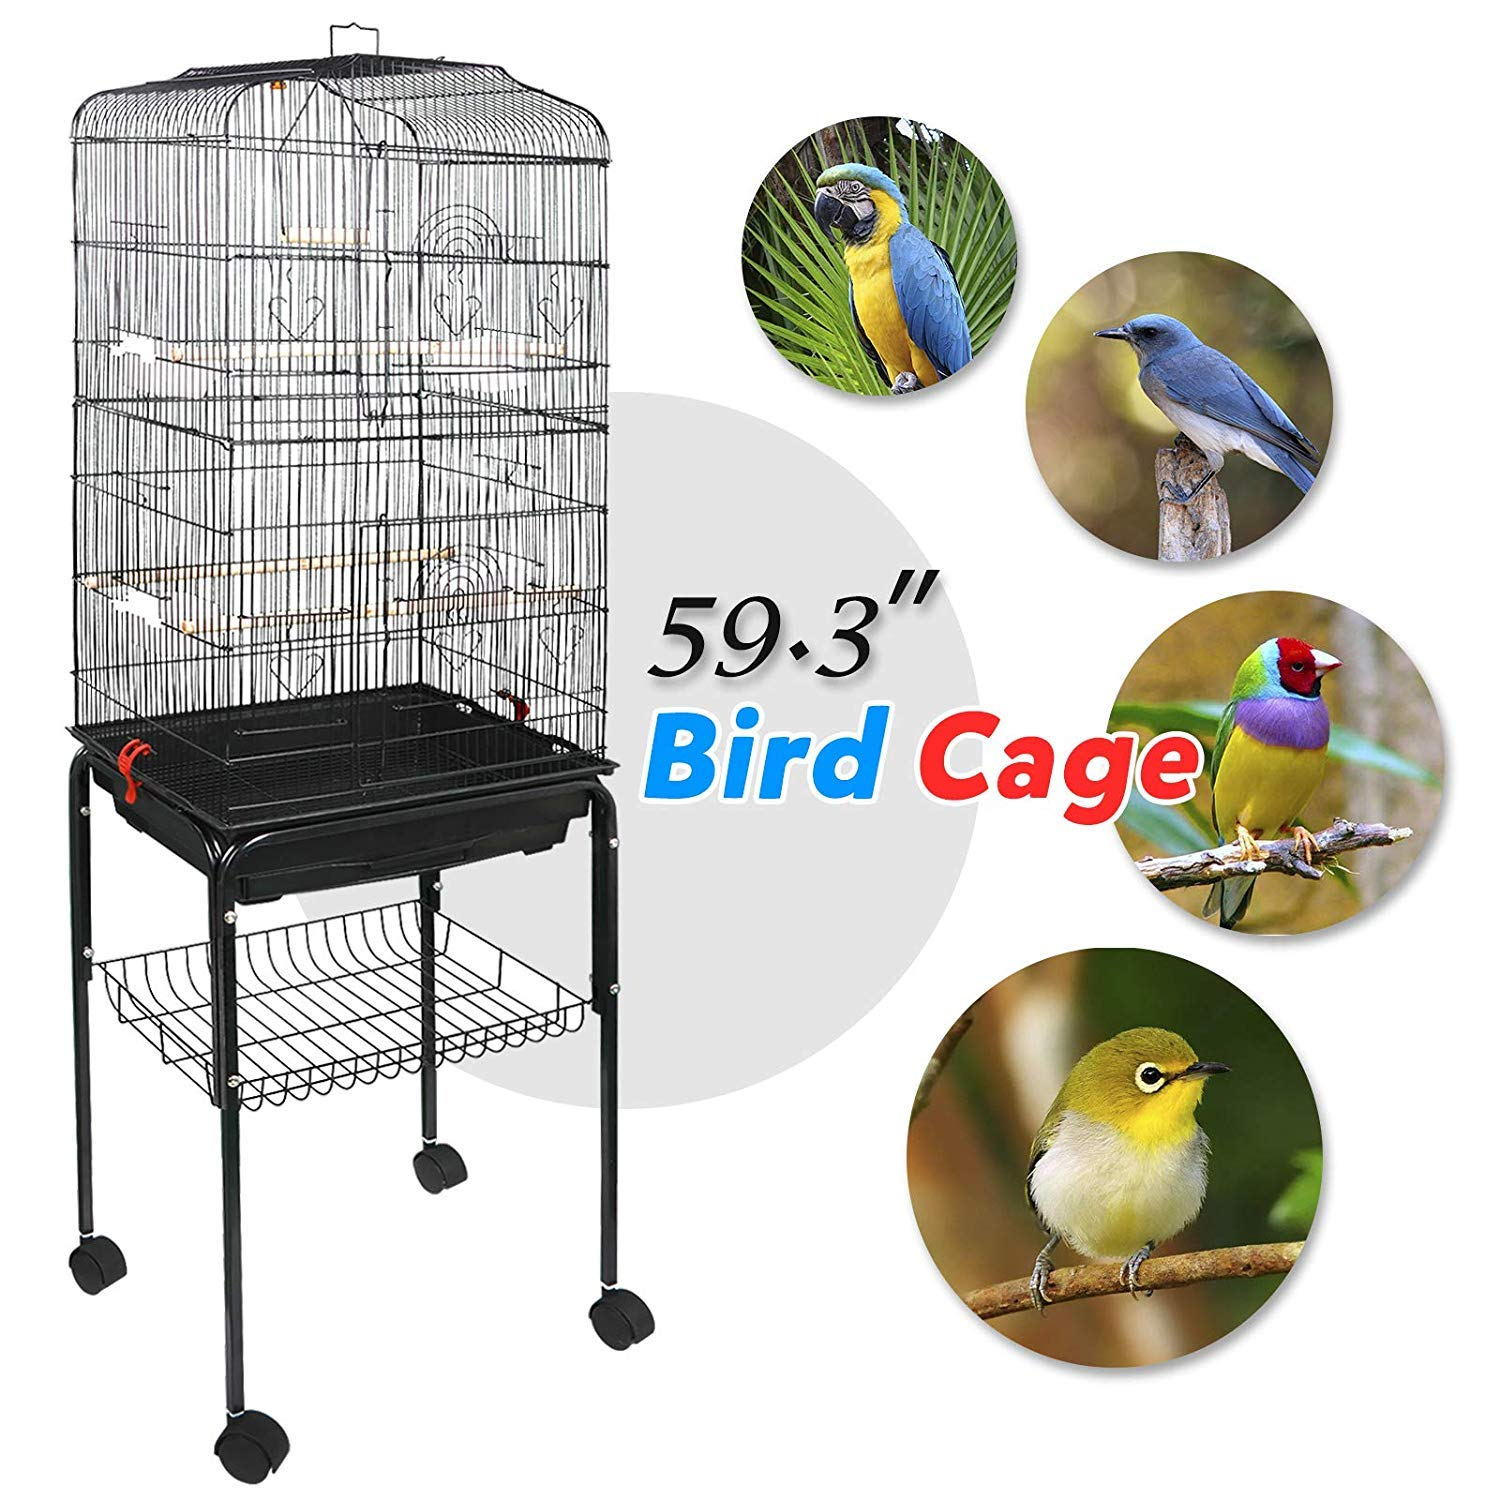 Nova Microdermabrasion 59.3'' Rolling Metal Bird Cage Medium Birdcage with Stand for Cockatiel Sun Conure Parakeet Finch Budgie Lovebird Canary Pet Bird Cage by Nova Microdermabrasion